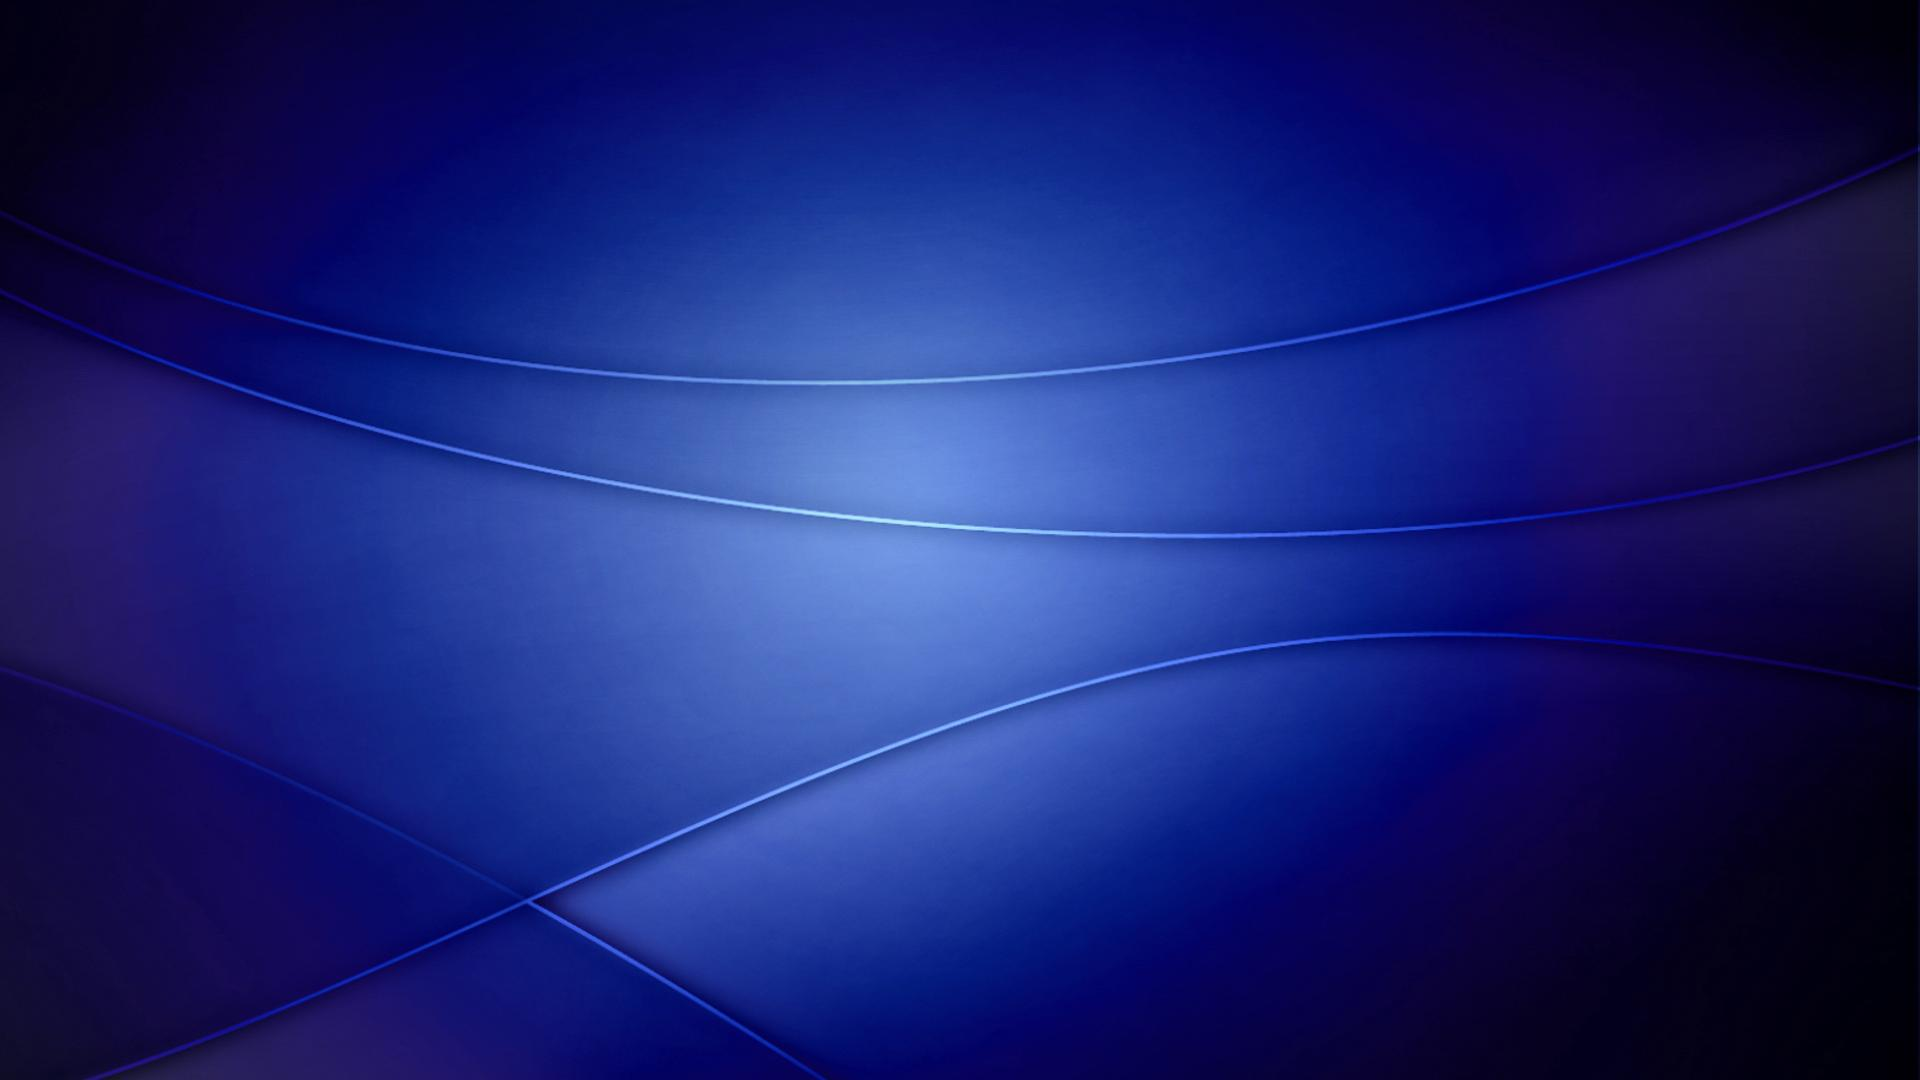 1920x1080 Deep blue lines background for windows 7 wide wallpapers 1920x1080